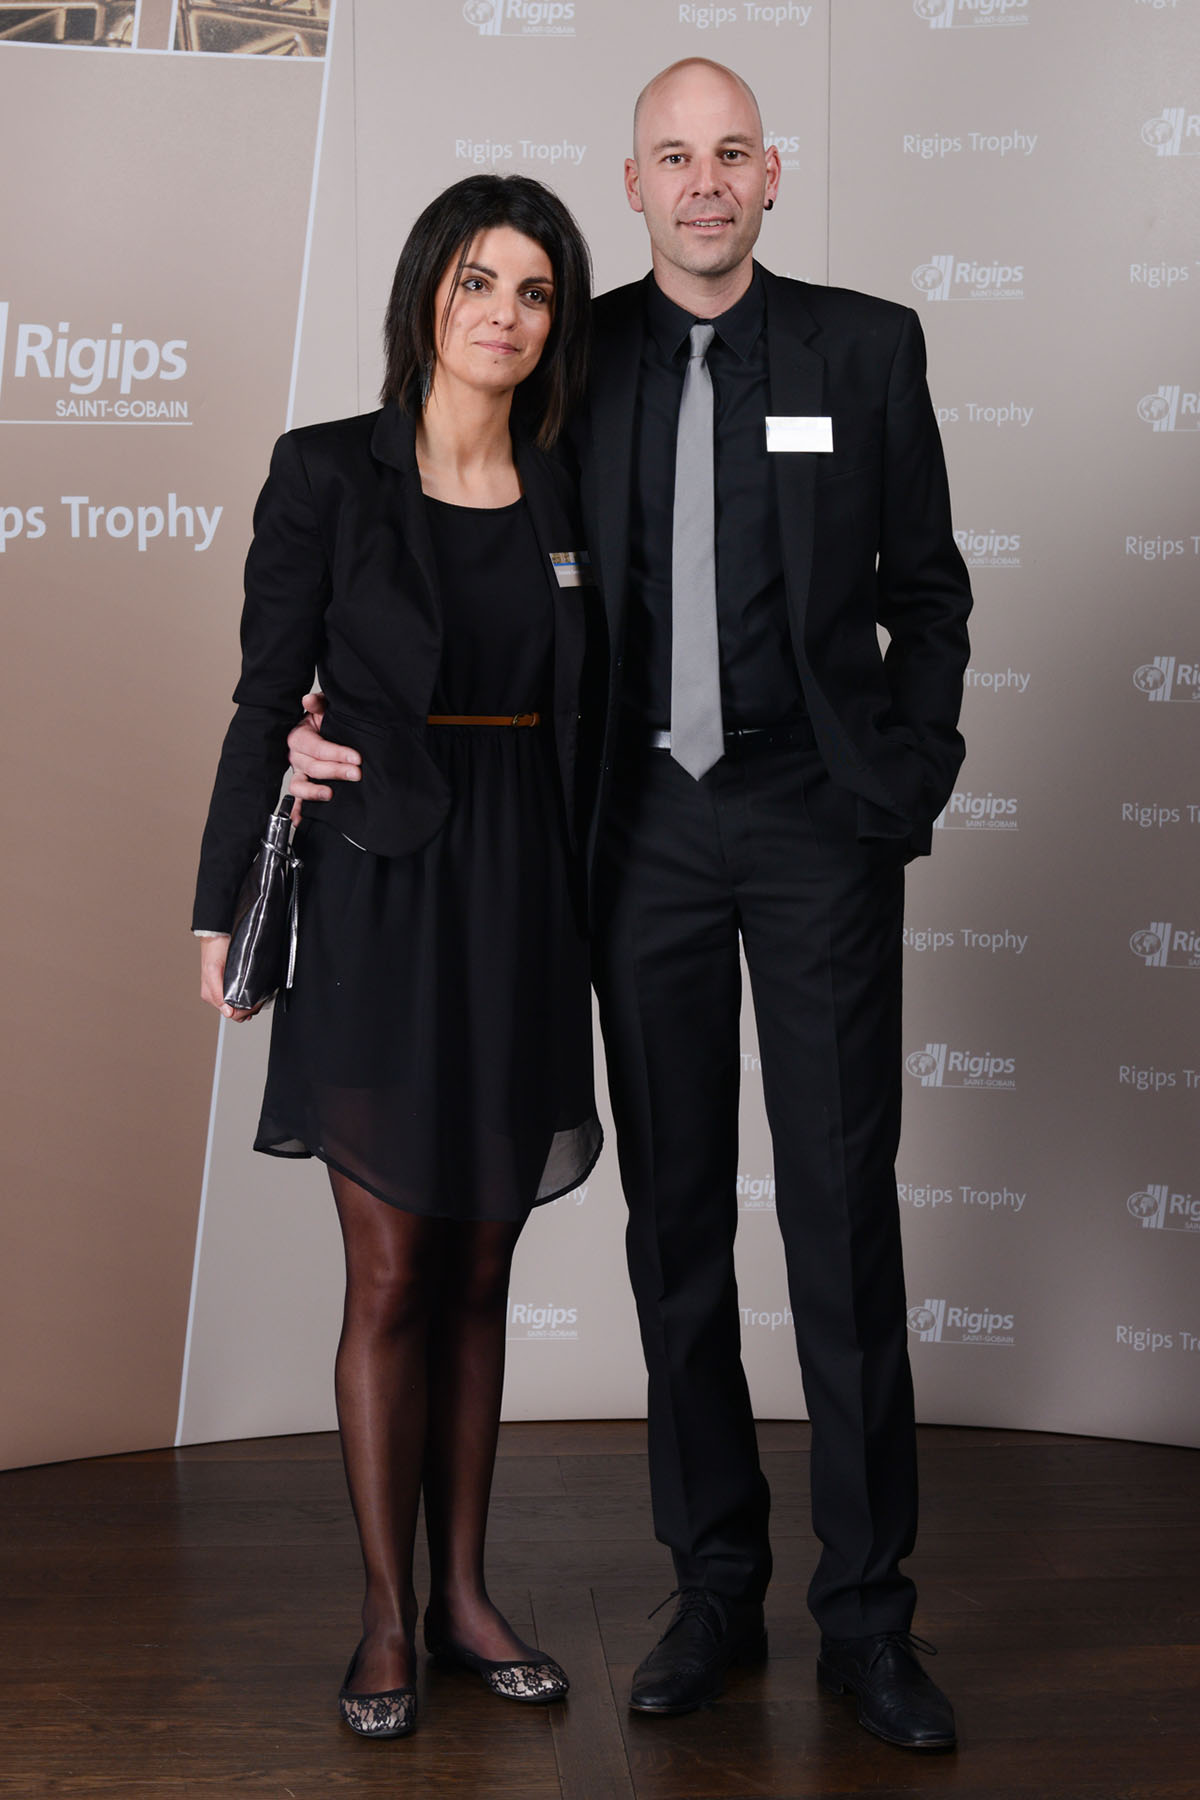 Rigips Trophy 16_0091